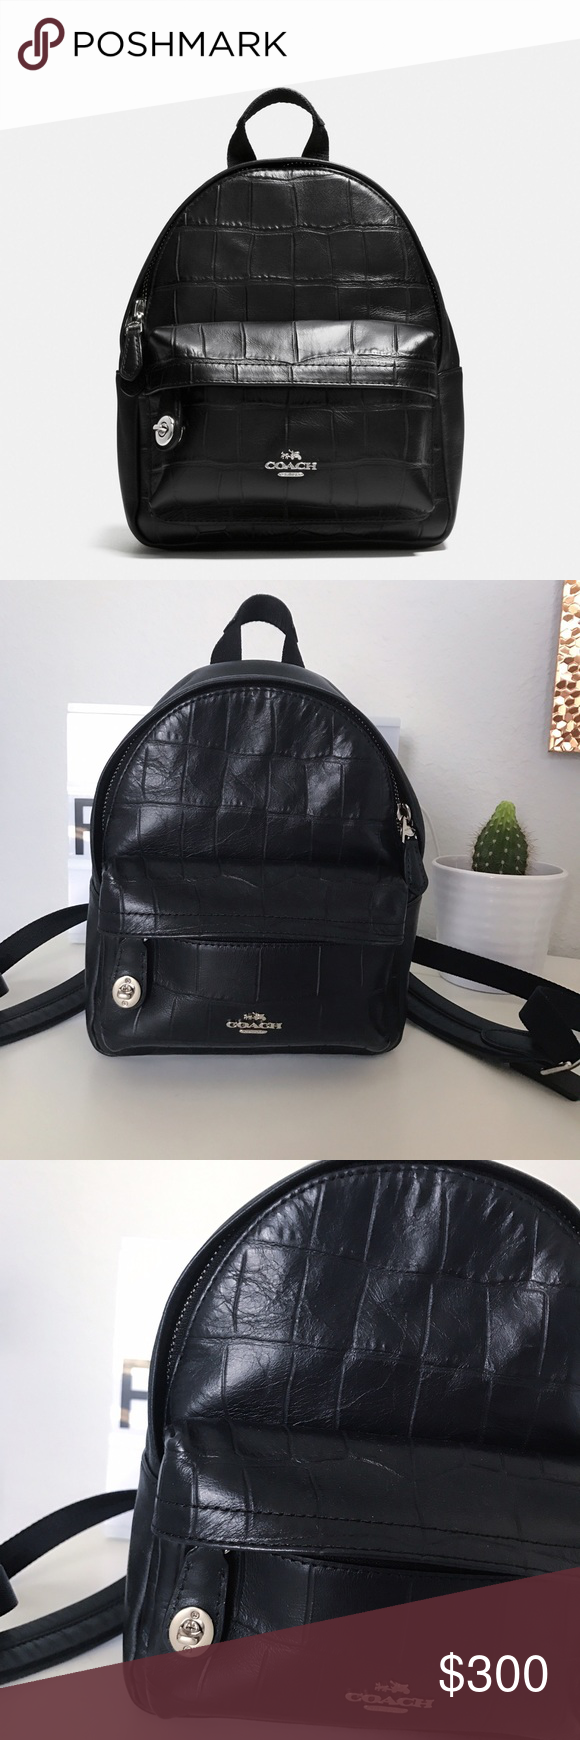 cb9cb0037d Coach Mini Campus Backpack Like new  Coach Mini Campus Backpack In Croc  Embossed Leather This